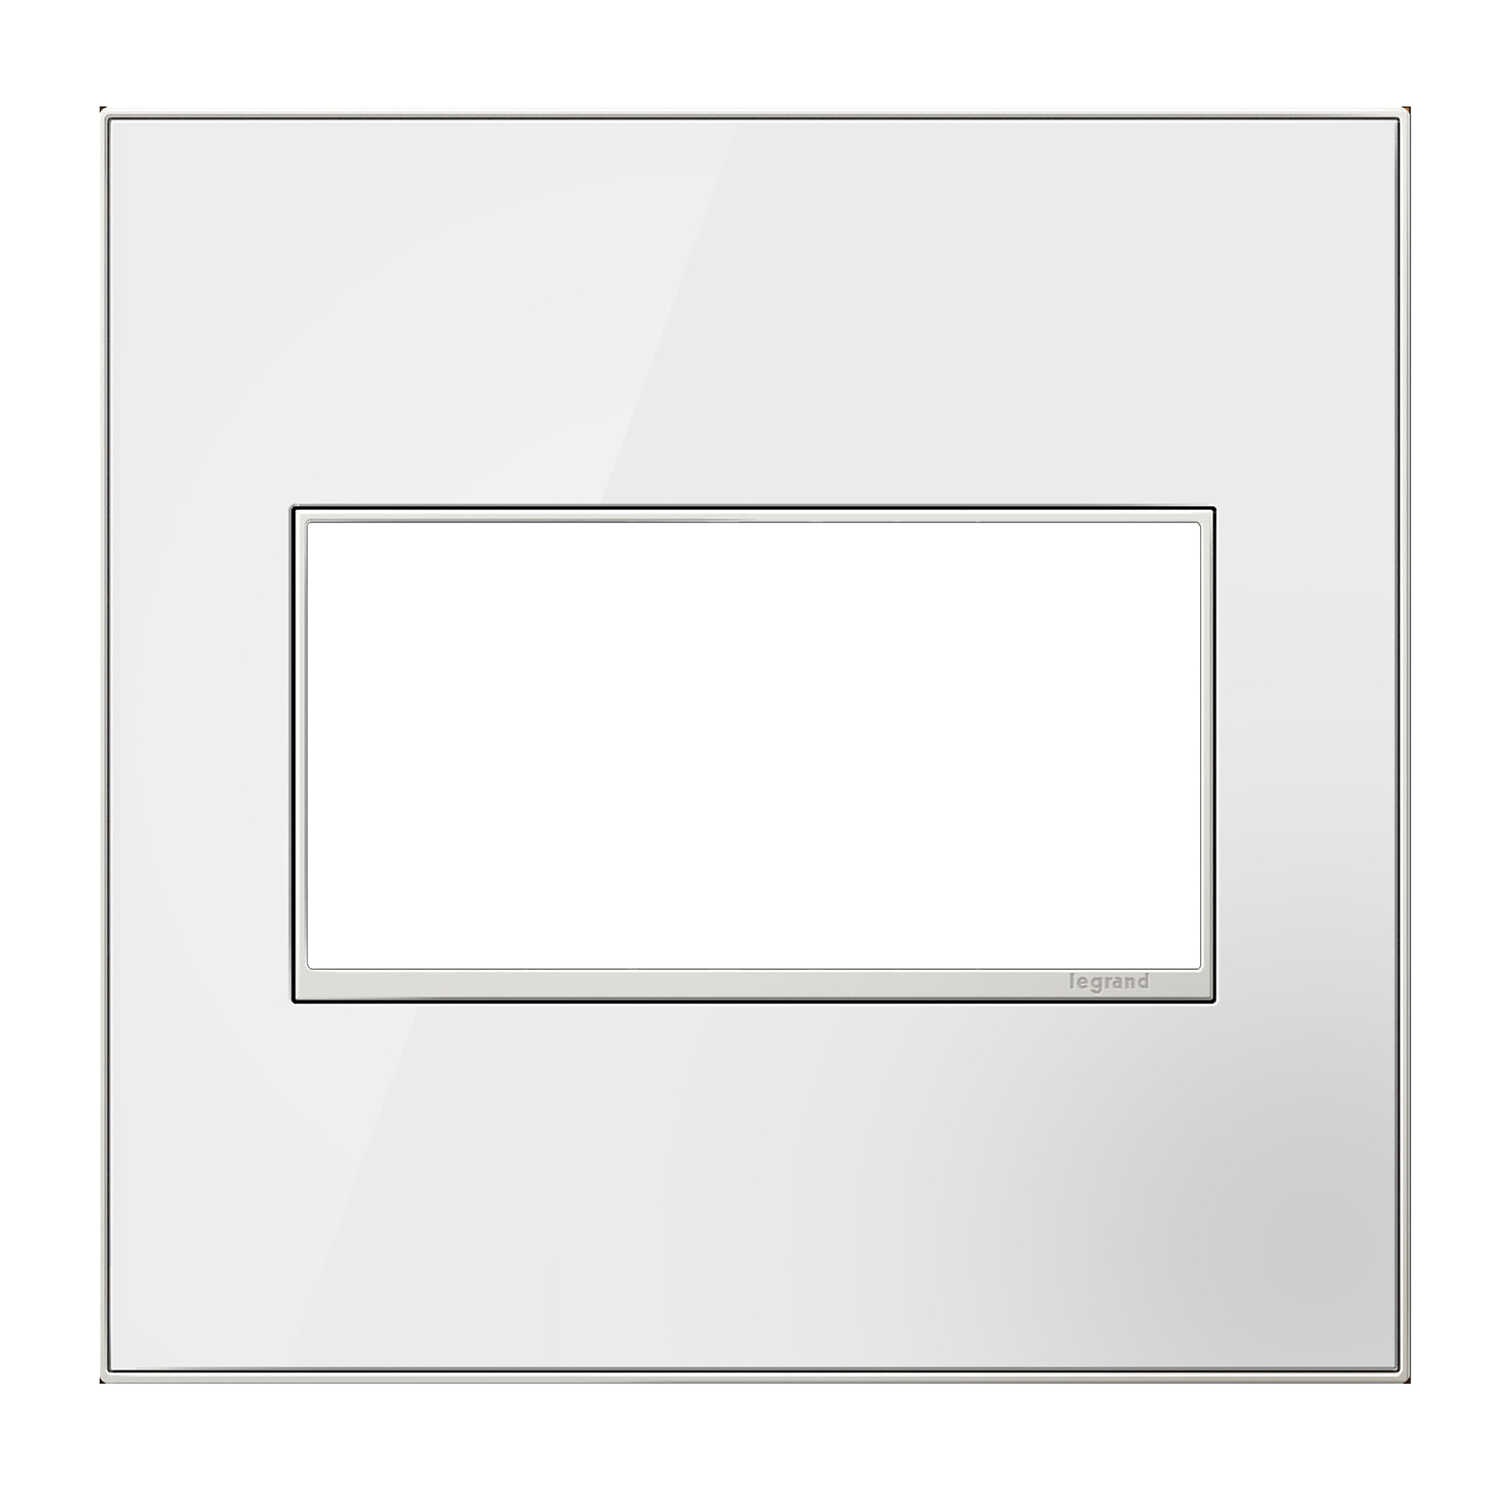 Legrand  Adorne  White  2 gang Thermoplastic Nylon  GFCI/Rocker  Wall Plate  1 pk